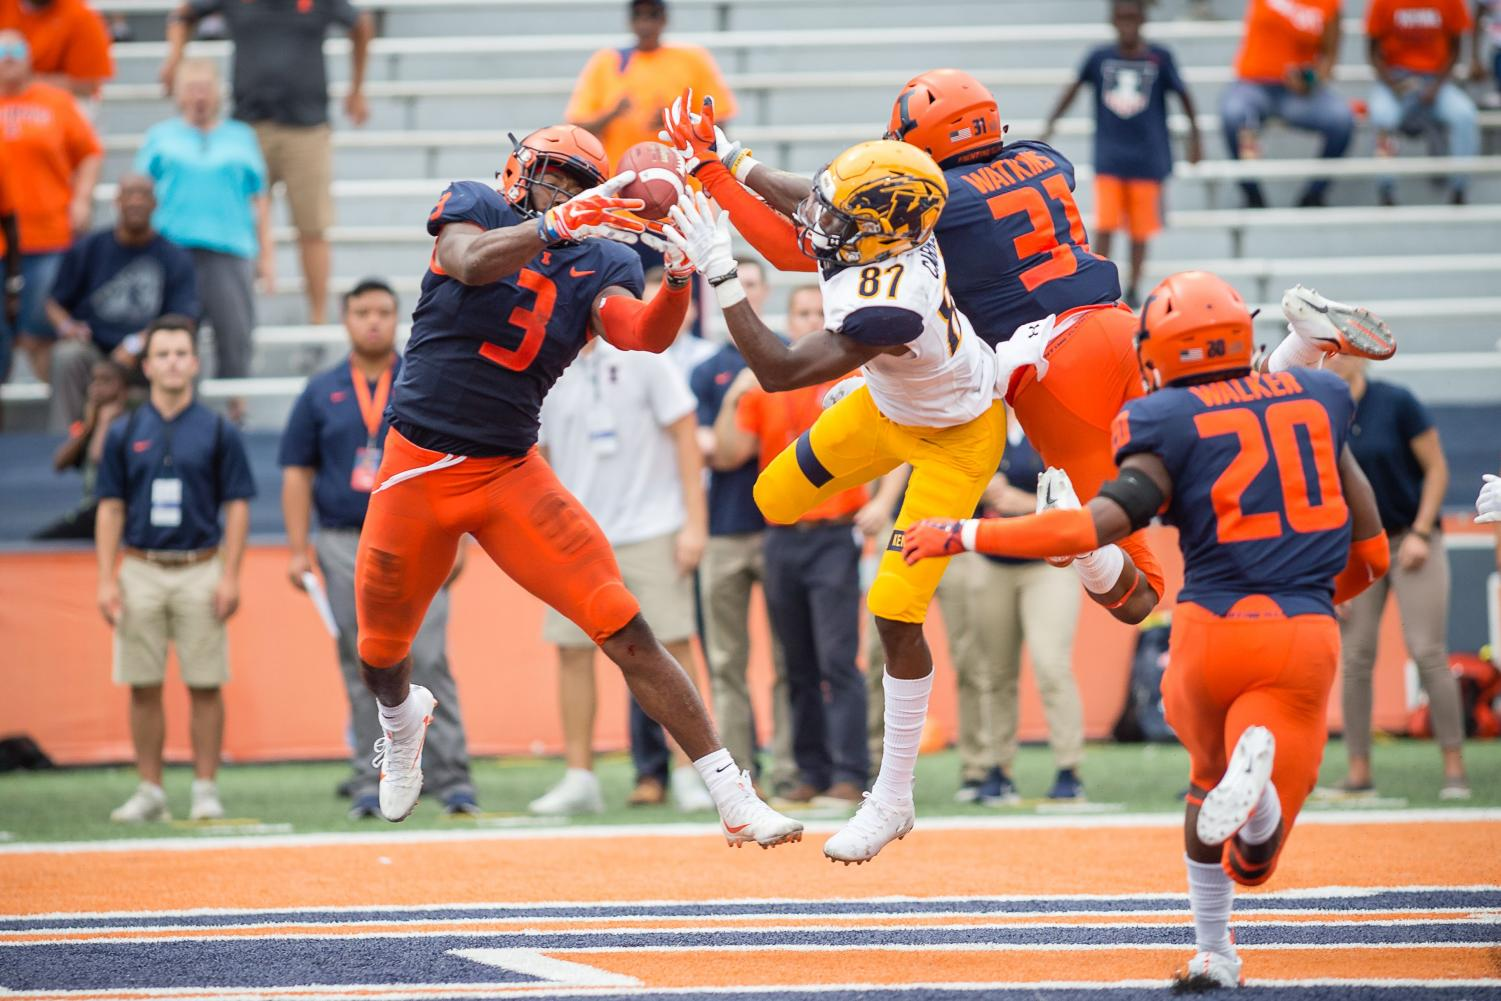 Illinois linebacker Del'Shawn Phillips intercepts a pass during the game against Kent State at Memorial Stadium on Sept. 1. Phillips has been a leader on defense, grabbing two interceptions this season.